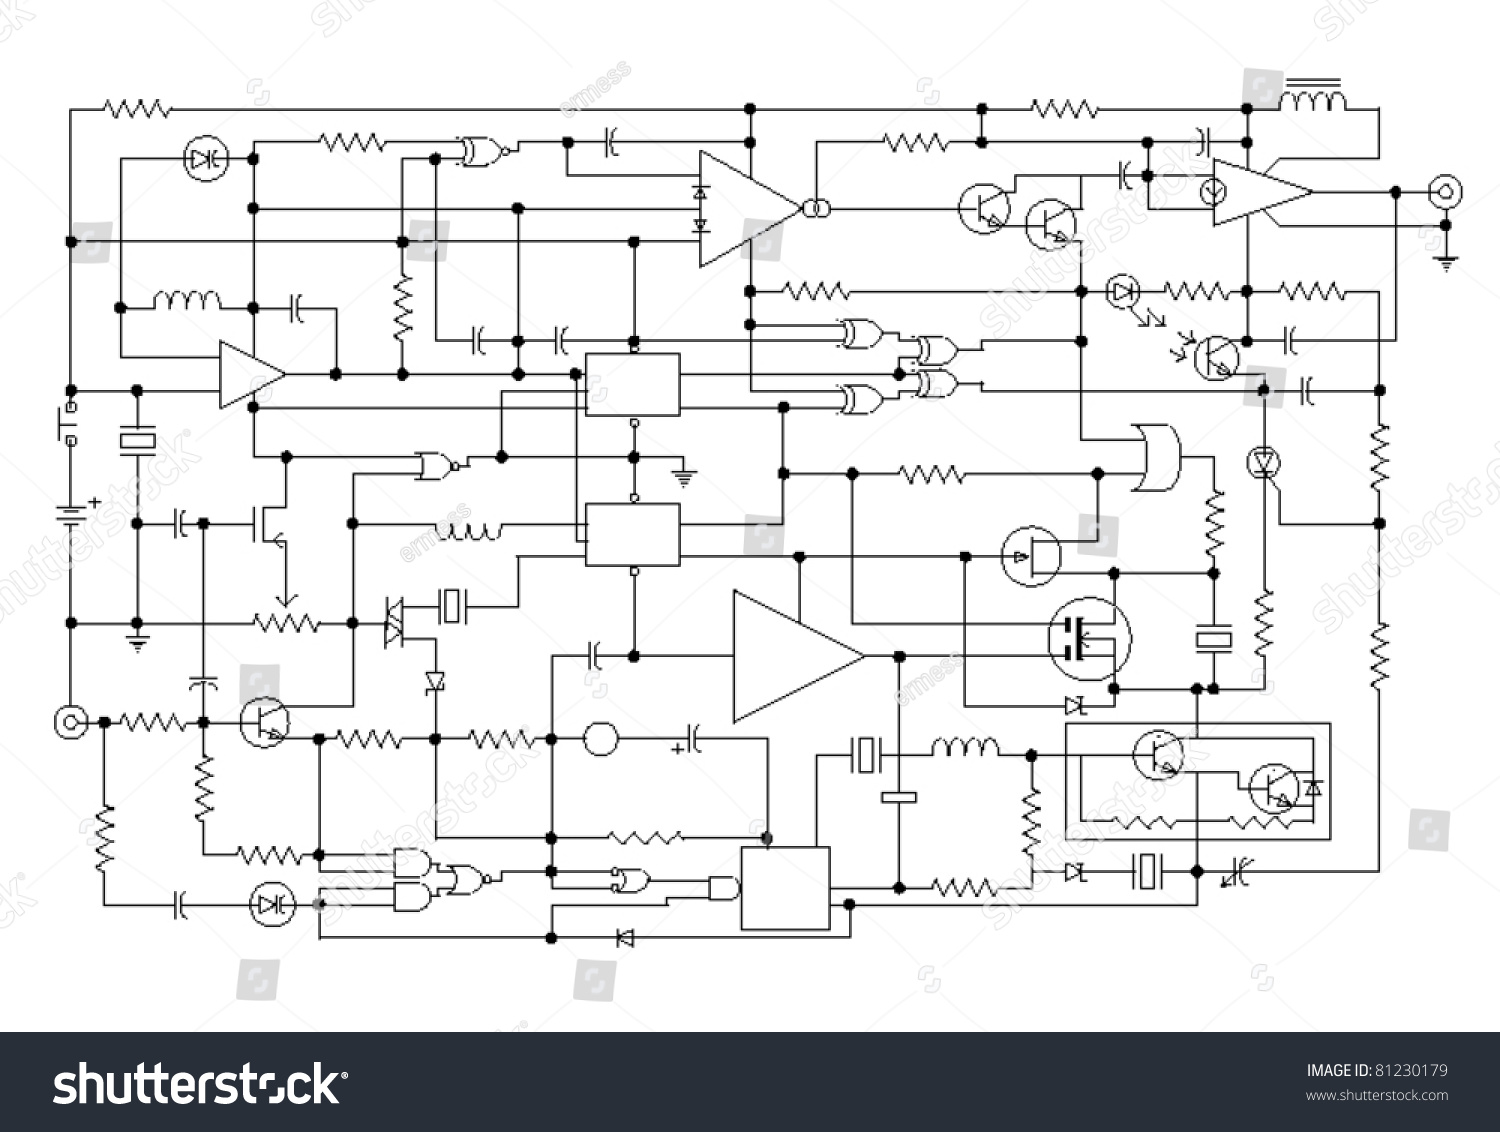 Electronic Circuit Schematic Design - Trusted Wiring Diagram •